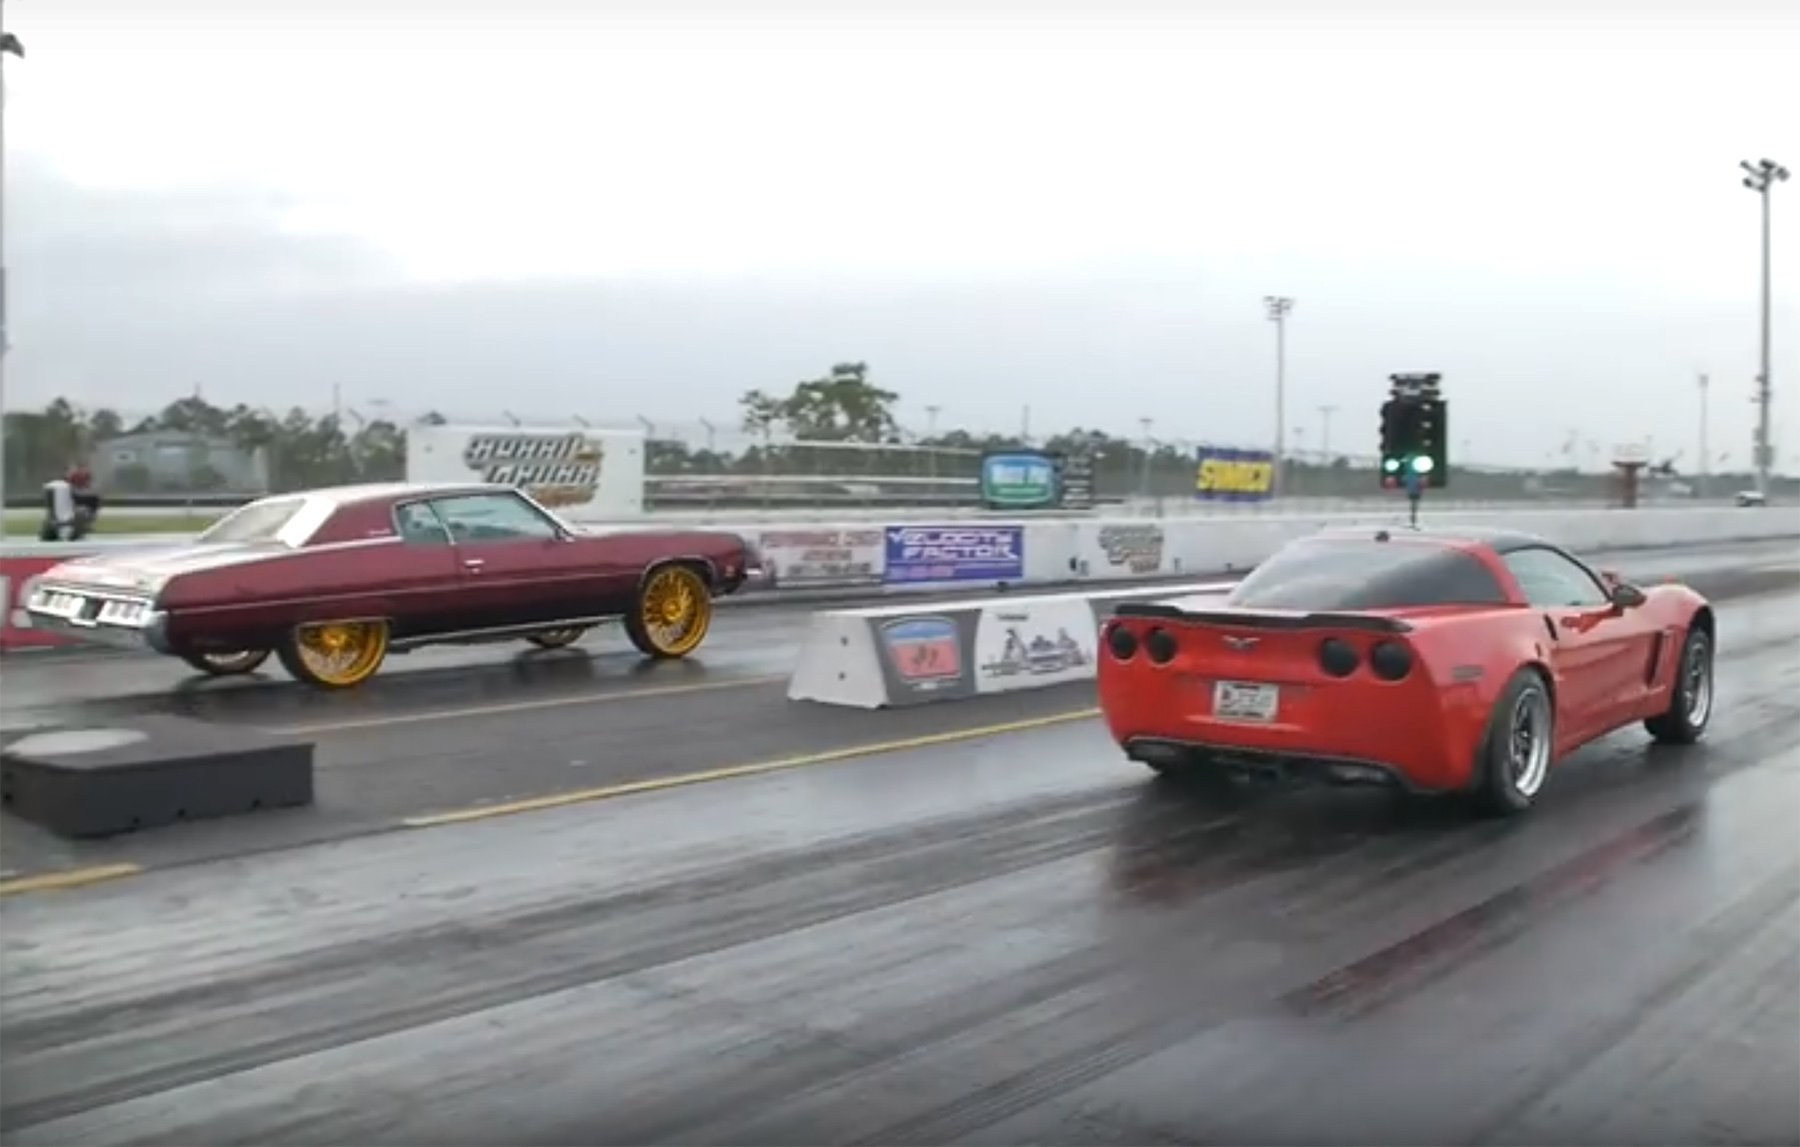 donk drag racing really is a thing and the cars are legit